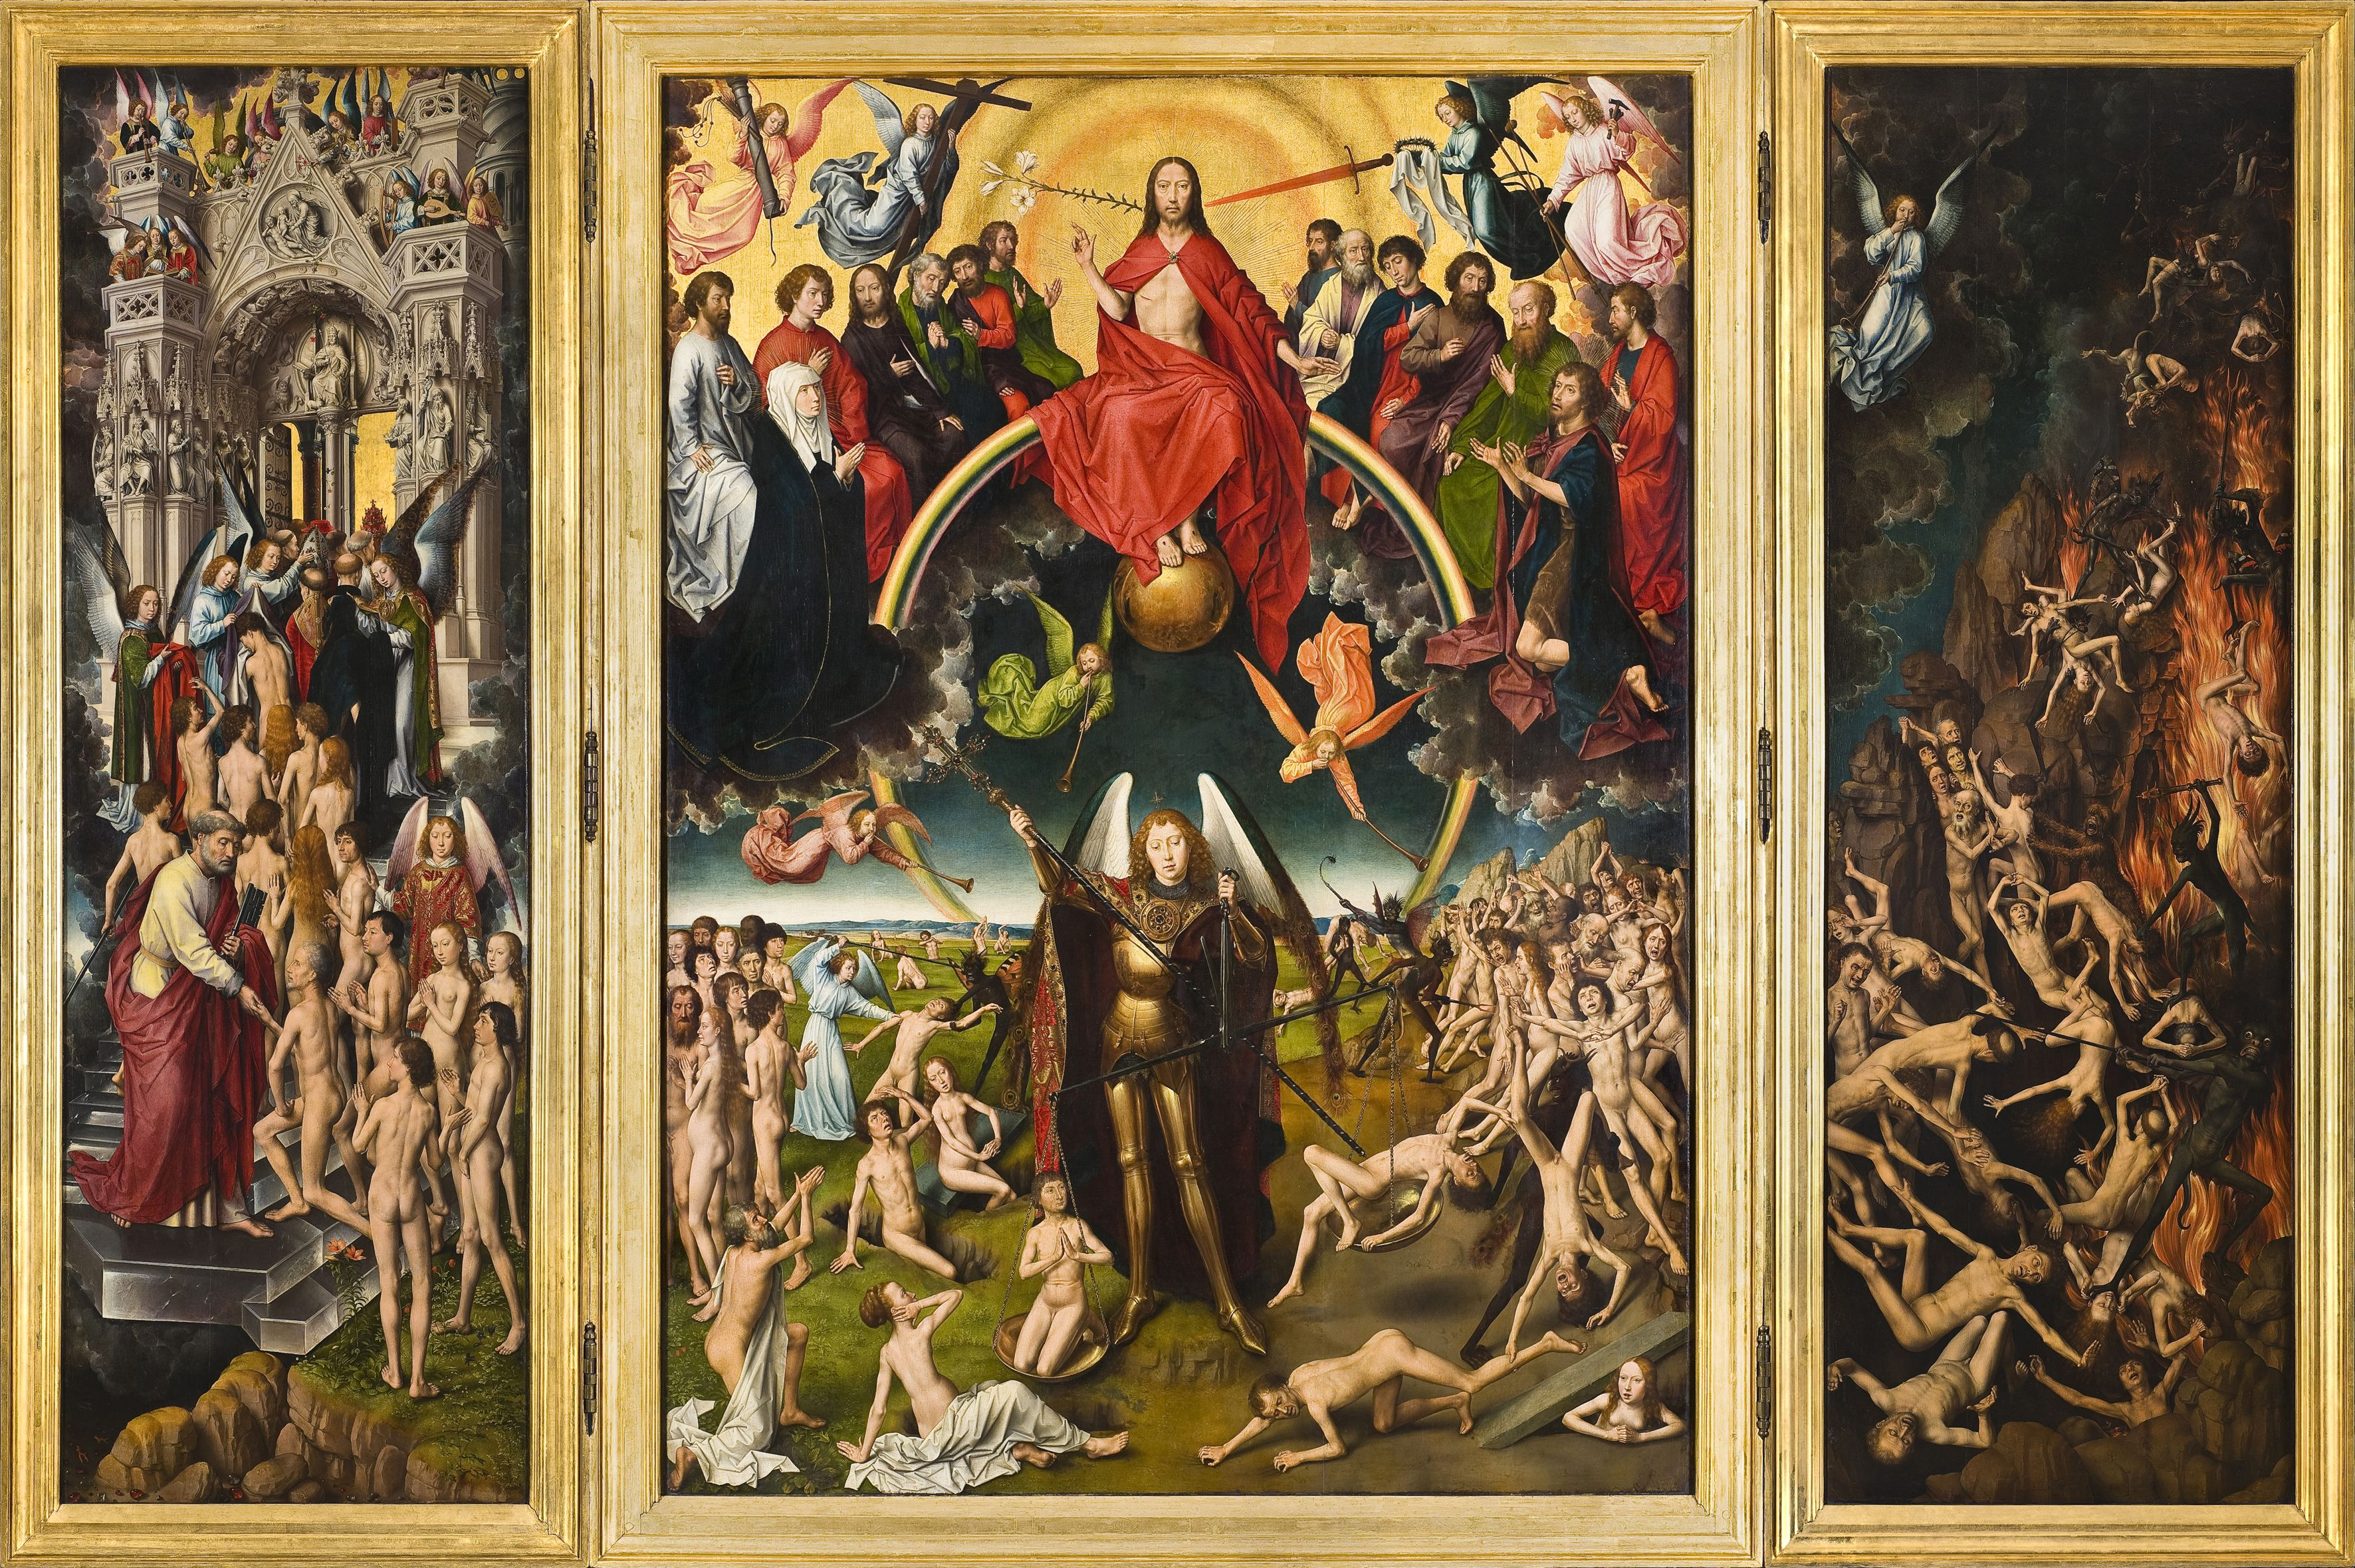 The Last Judgment Memling Wikipedia Image Direct Url Https